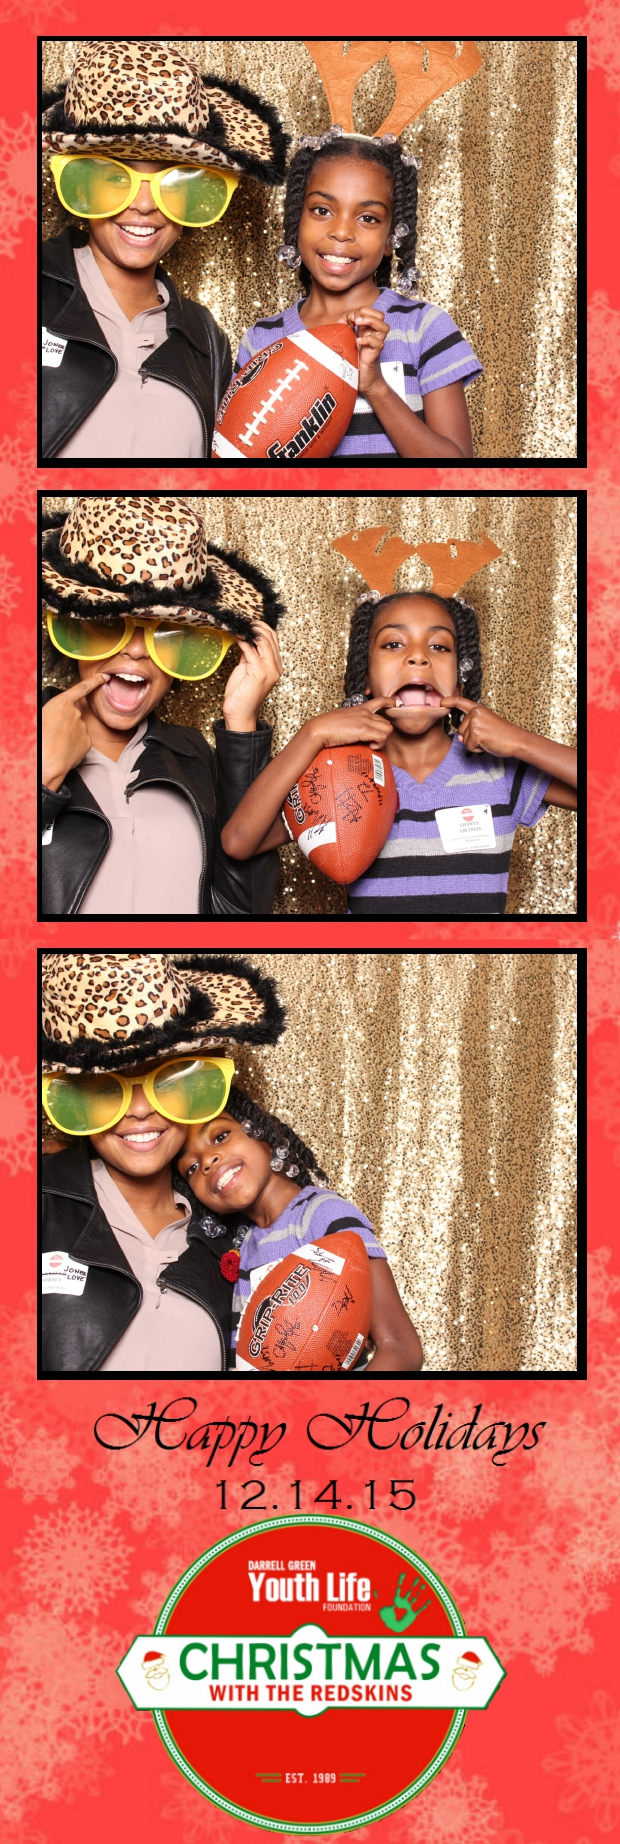 Guest House Events Photo Booth DGYLF Strips (15).jpg